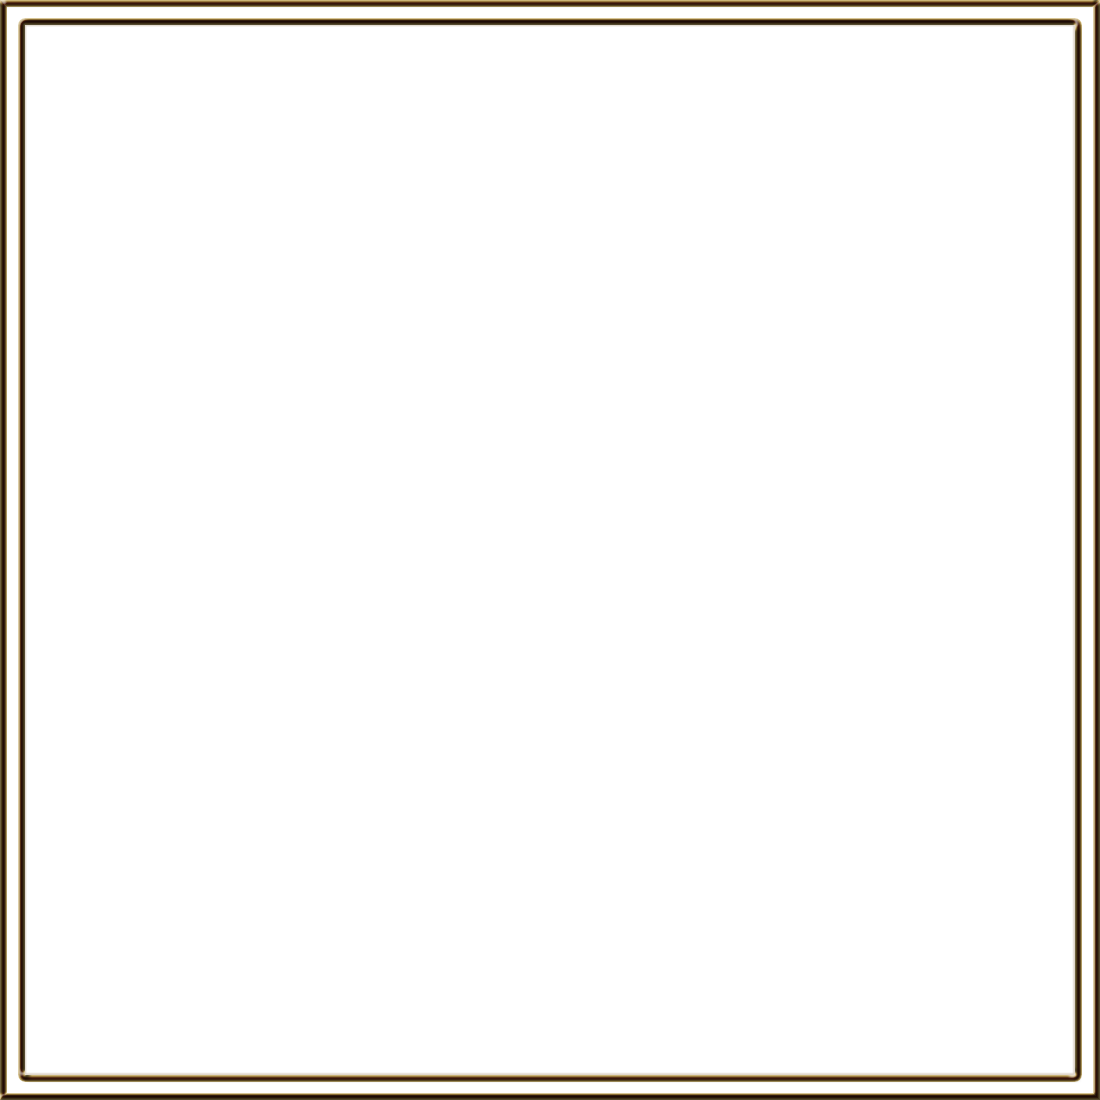 Double Line Border PNG - 151999